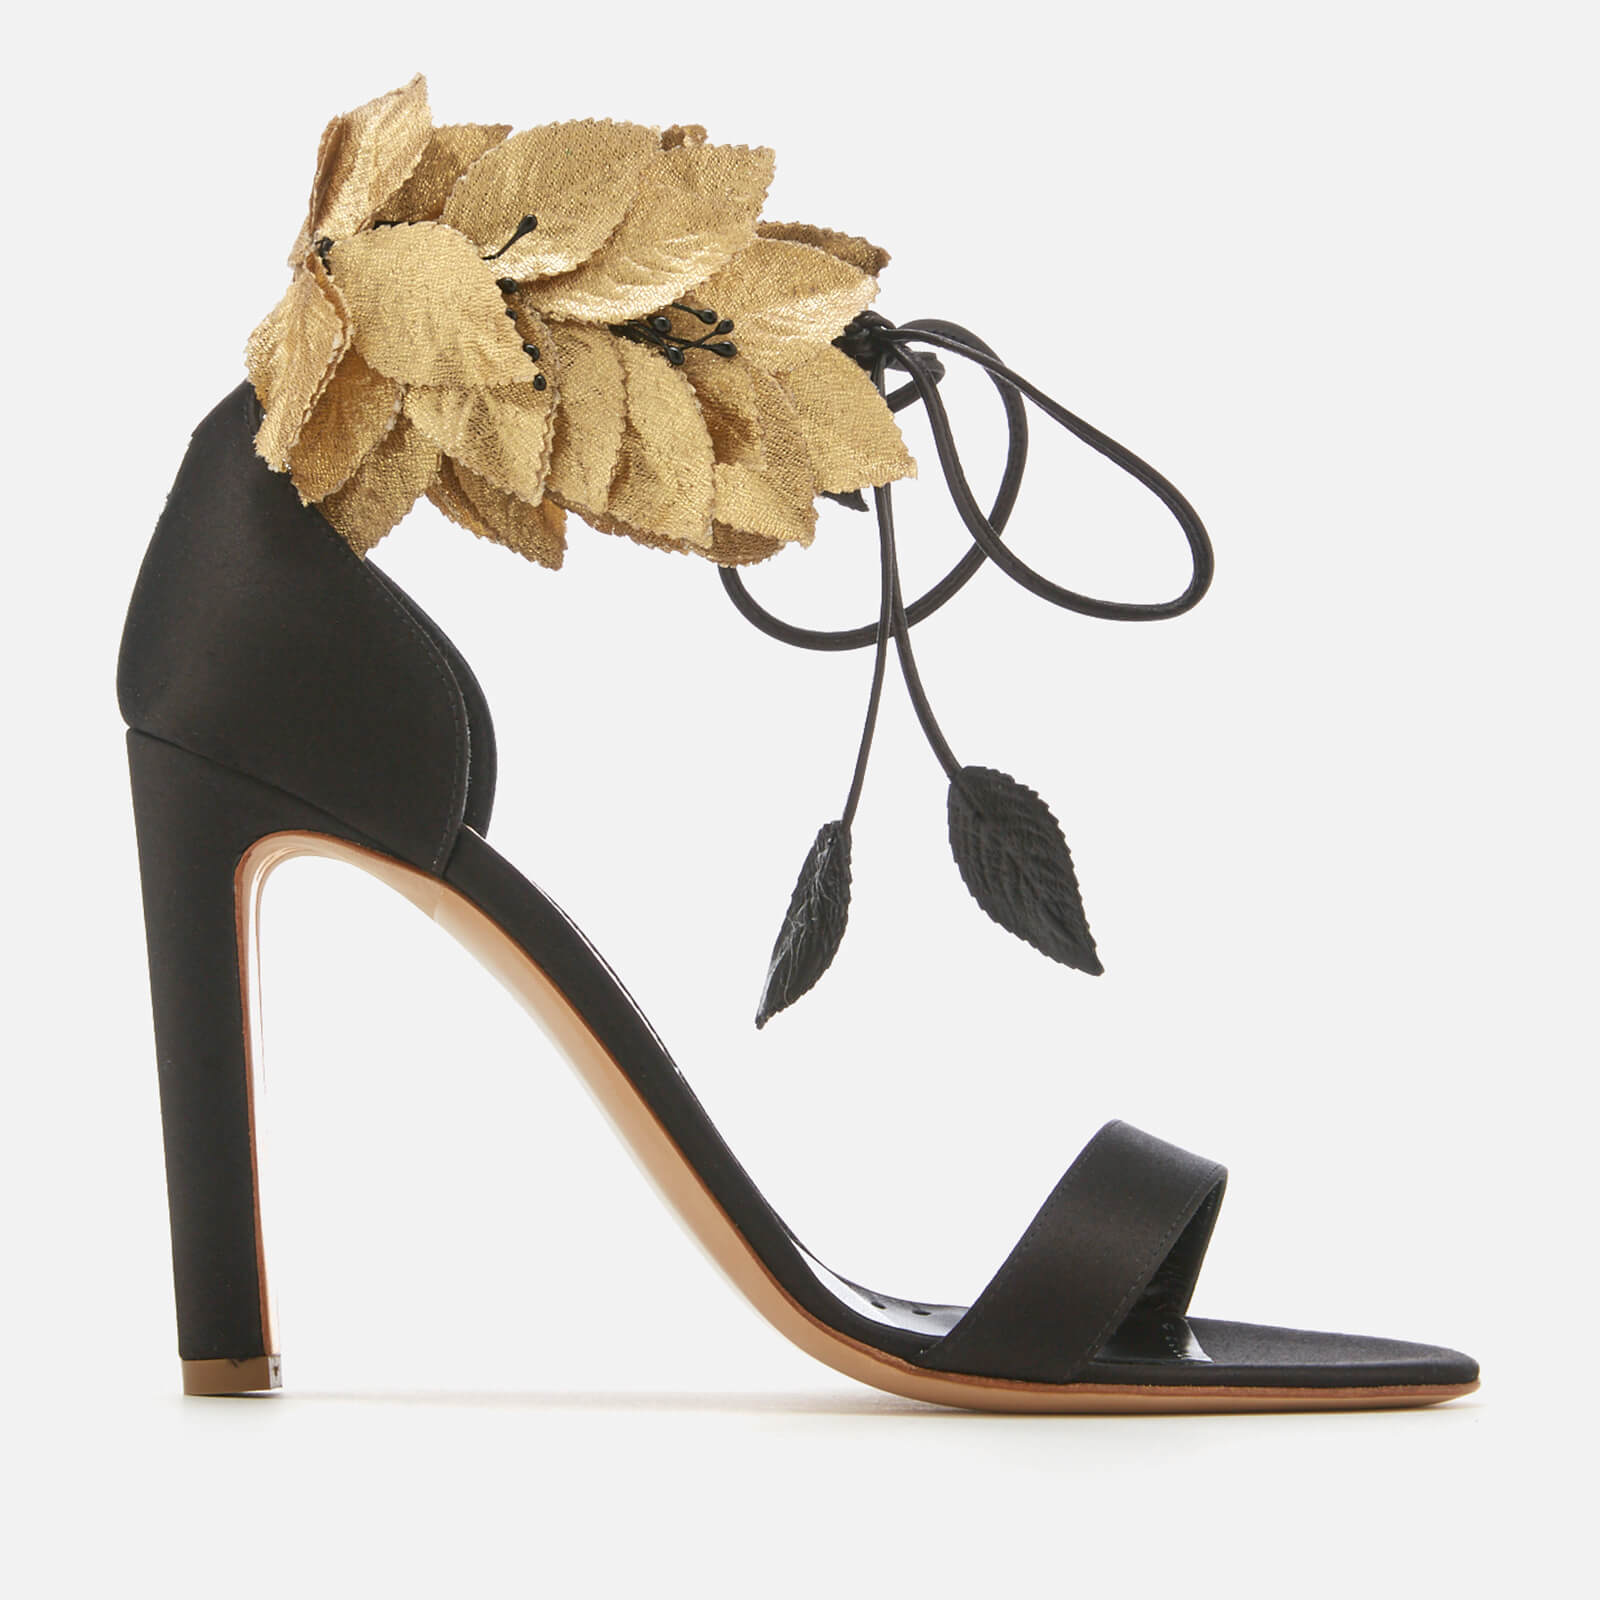 3c9c9c2437b3 Rupert Sanderson Women s Eden Heeled Sandals - Black Satin Gold Silk - Free  UK Delivery over £50